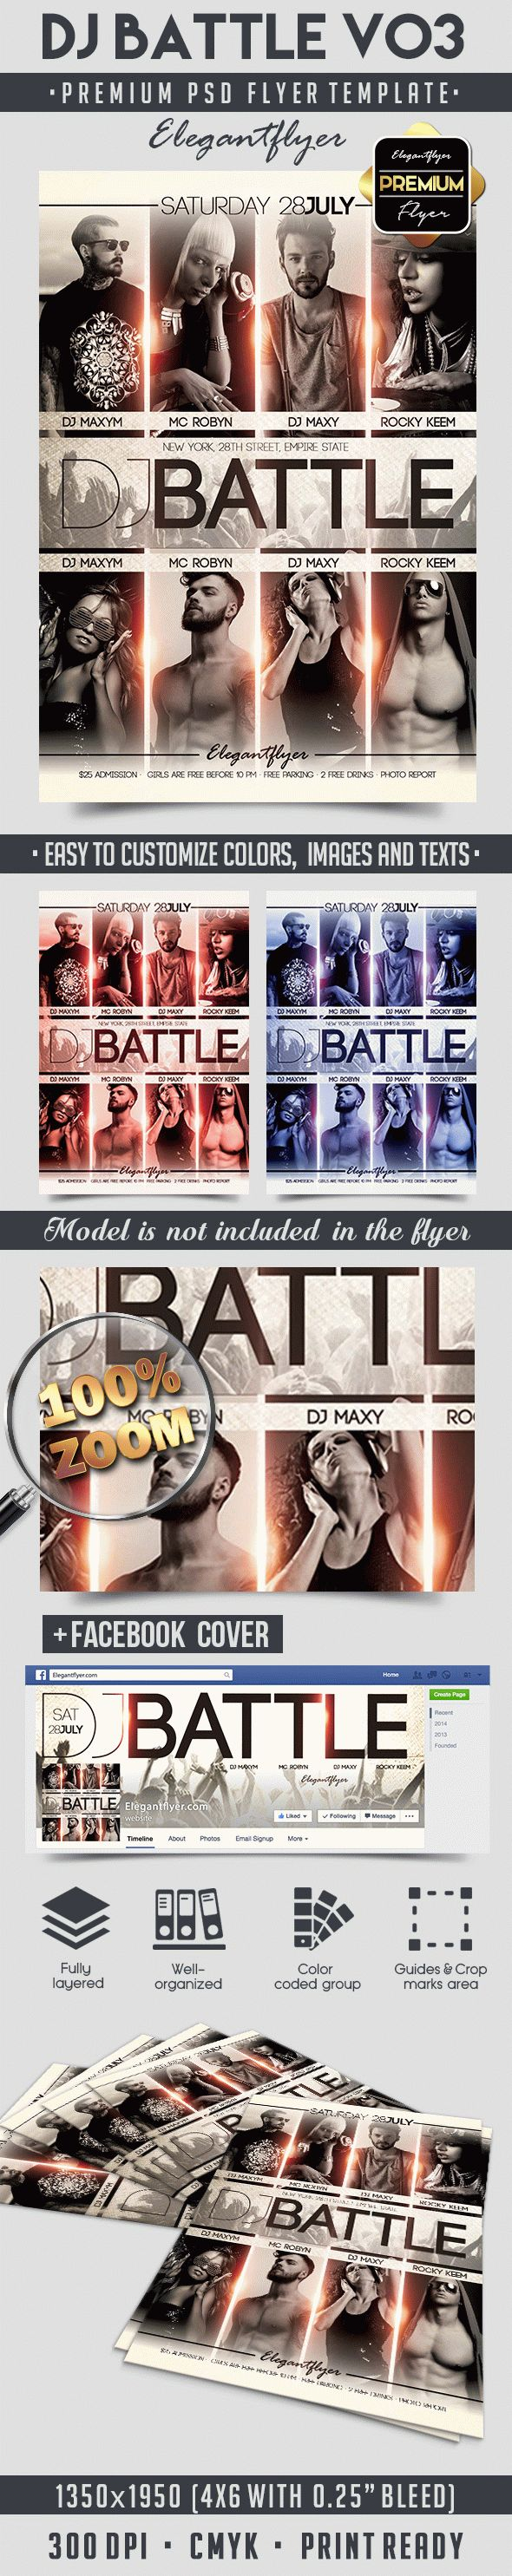 DJ Battle V03 – Flyer PSD Template + Facebook Cover